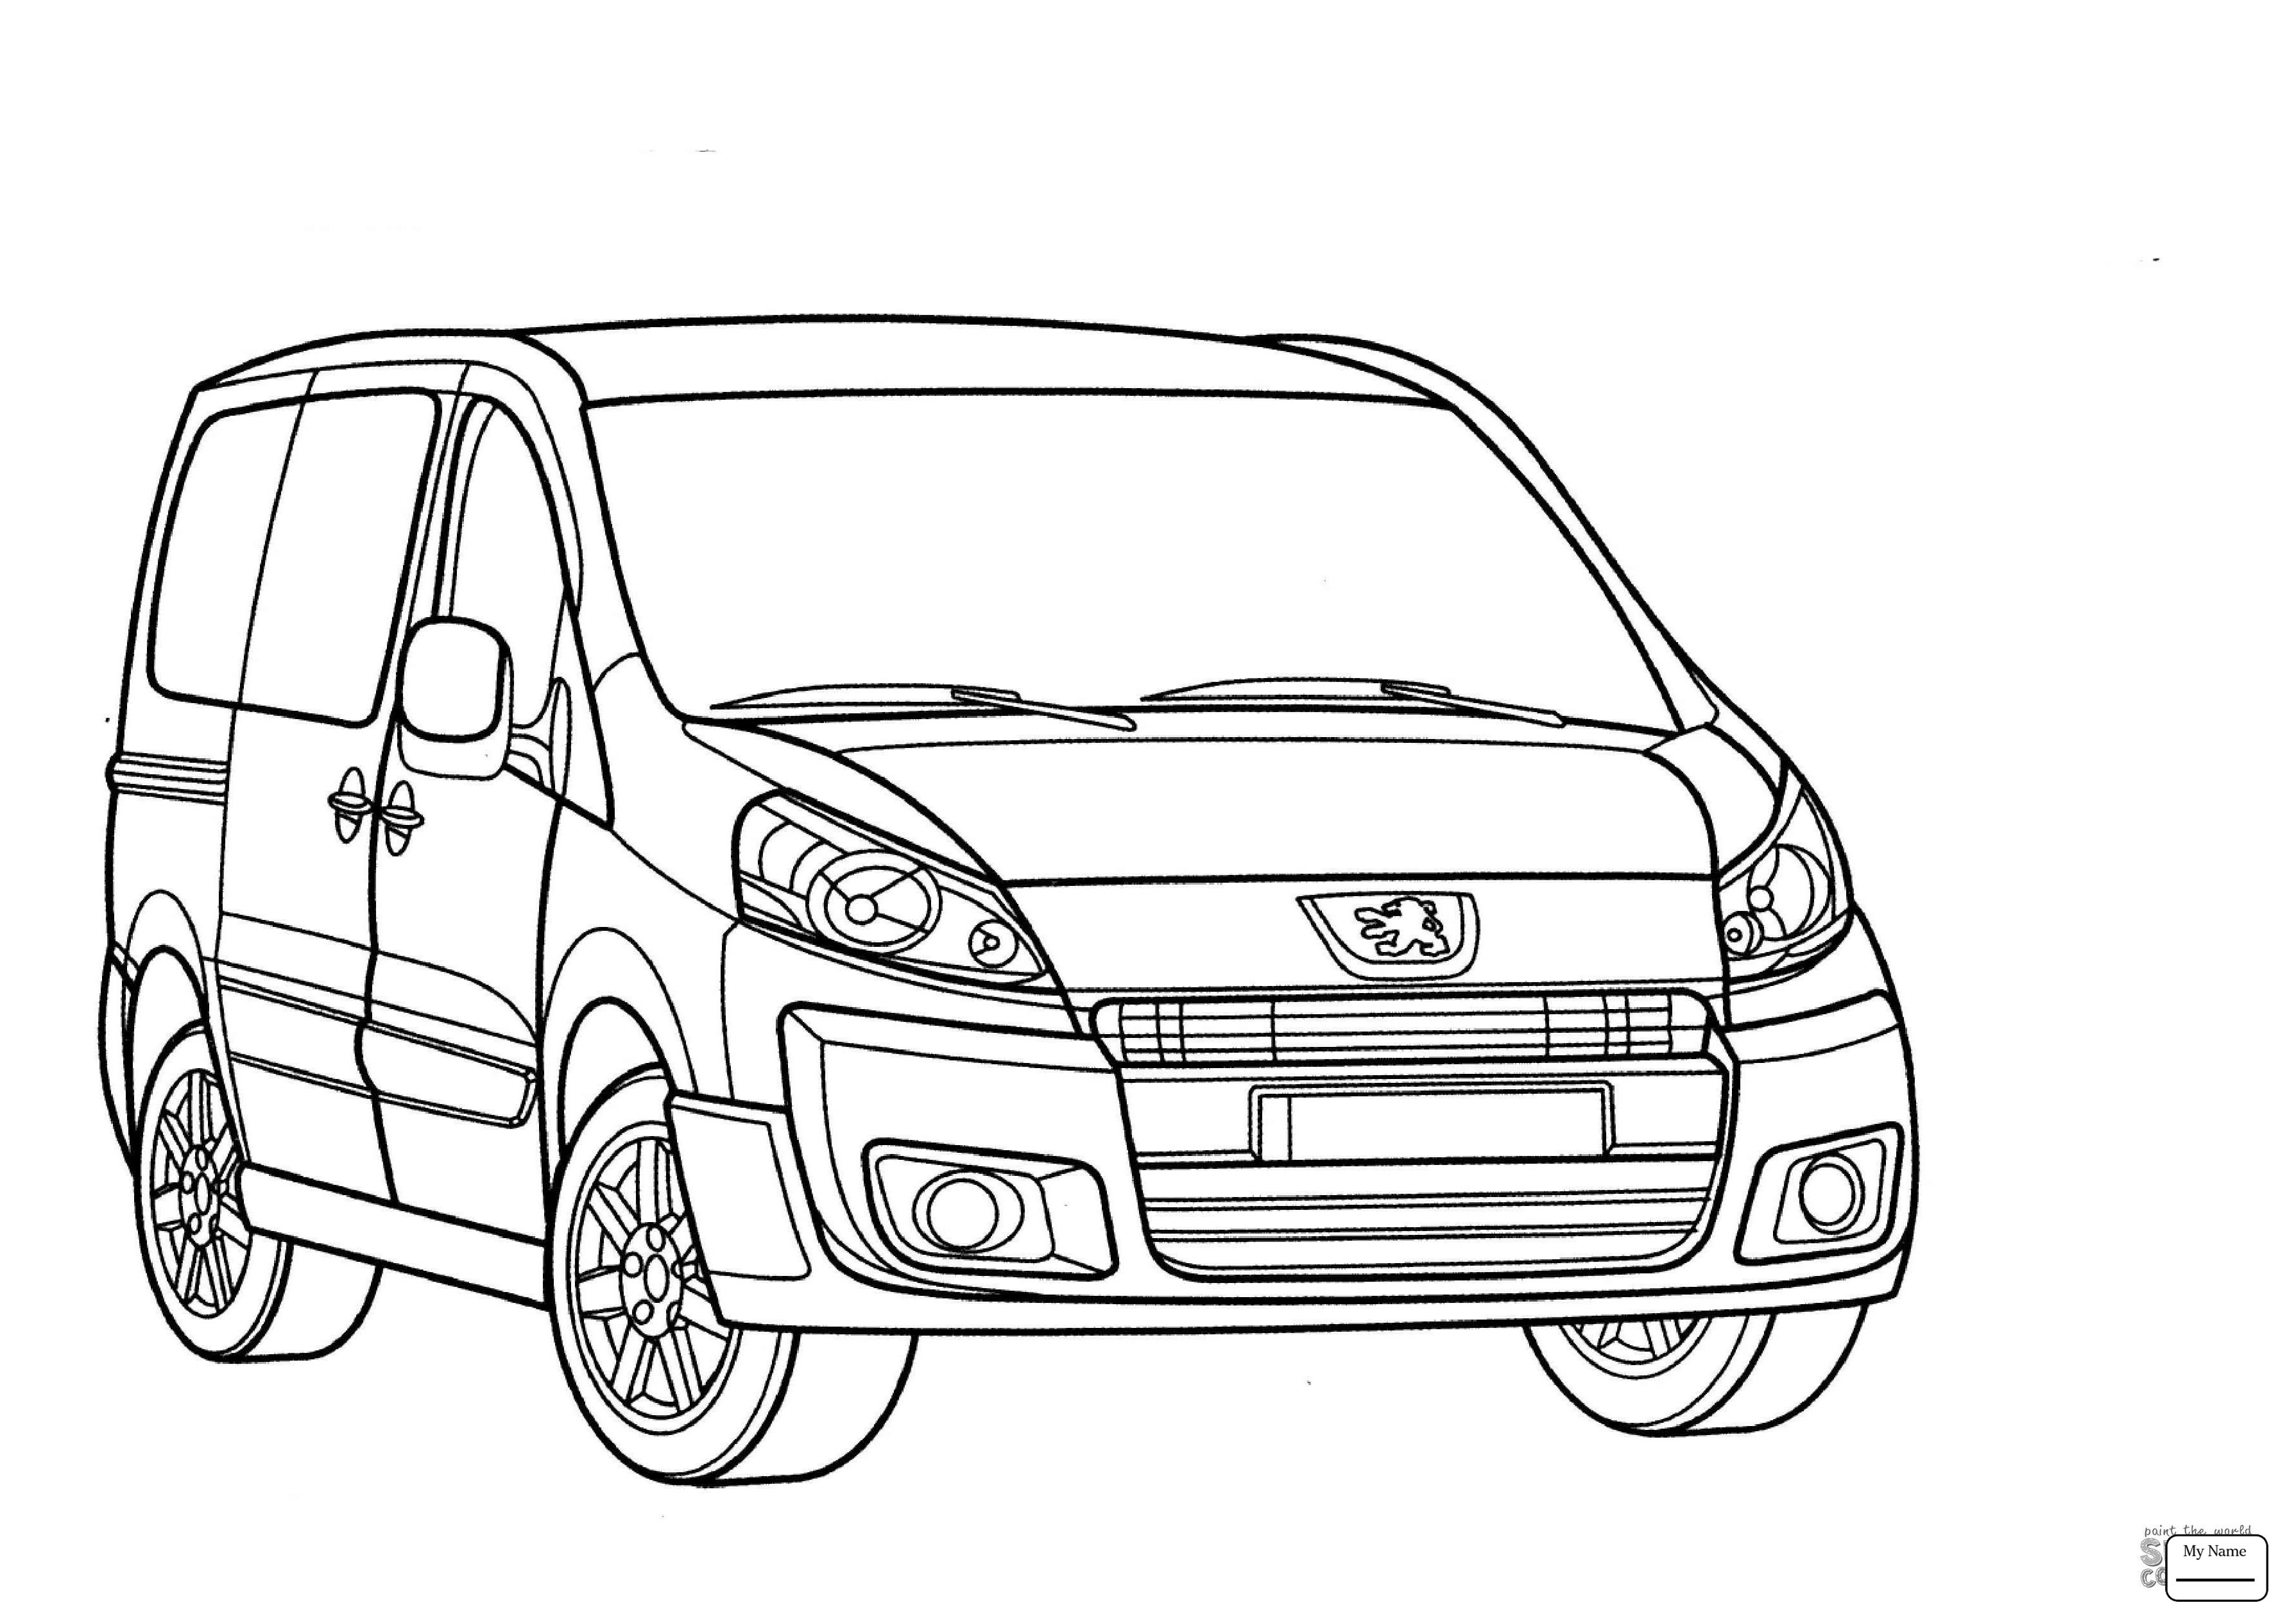 Peugeot 907 Coloring Pages Free Coloring Pages Coloring For Kids Print Buttons